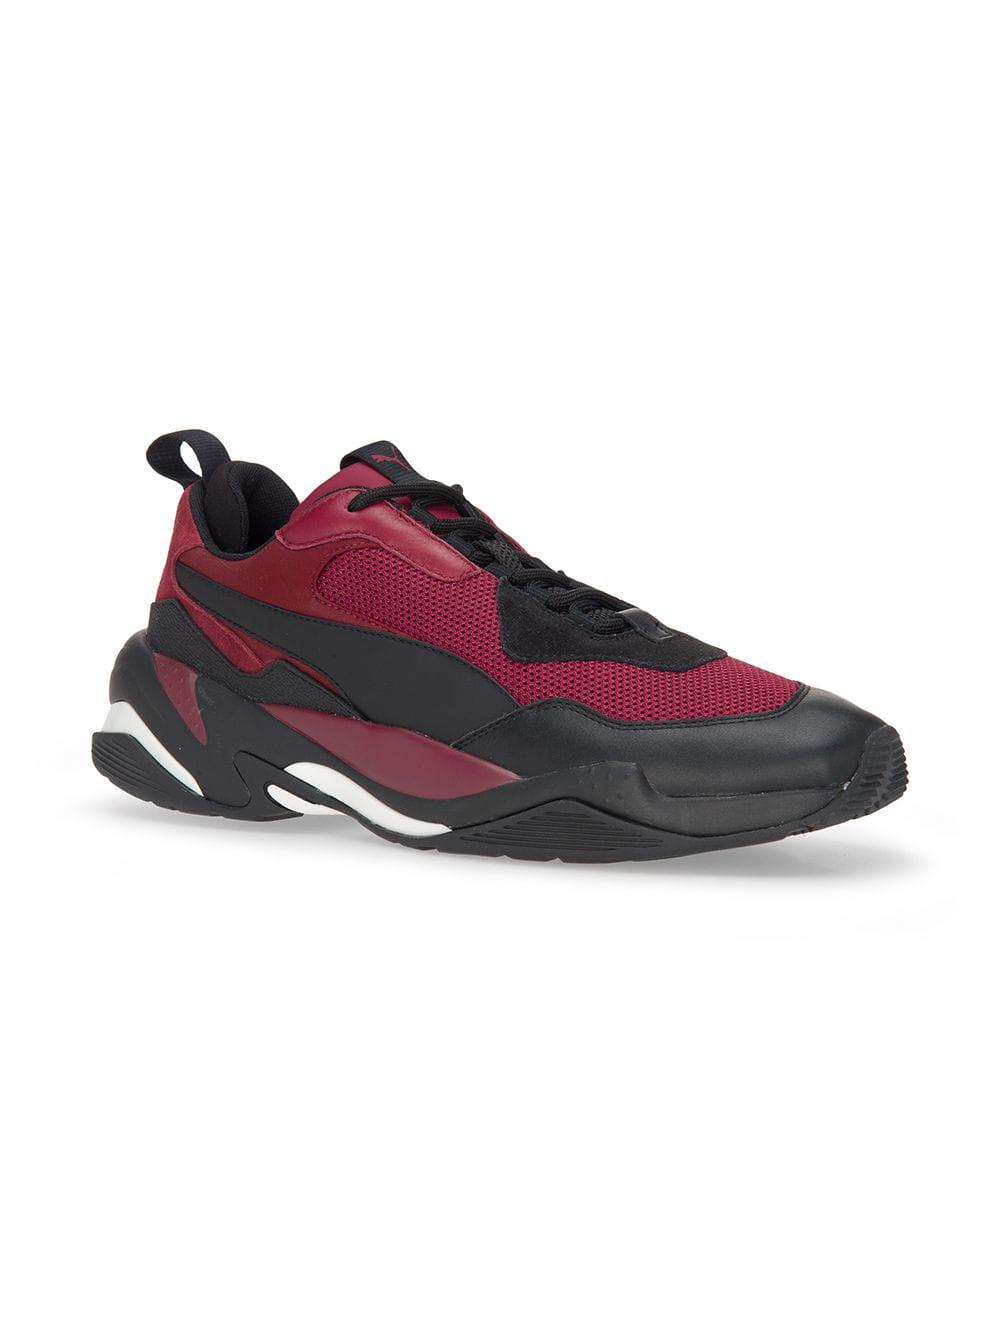 e7b43d835d2 Lyst - PUMA Thunder Spectra Sneakers in Red for Men